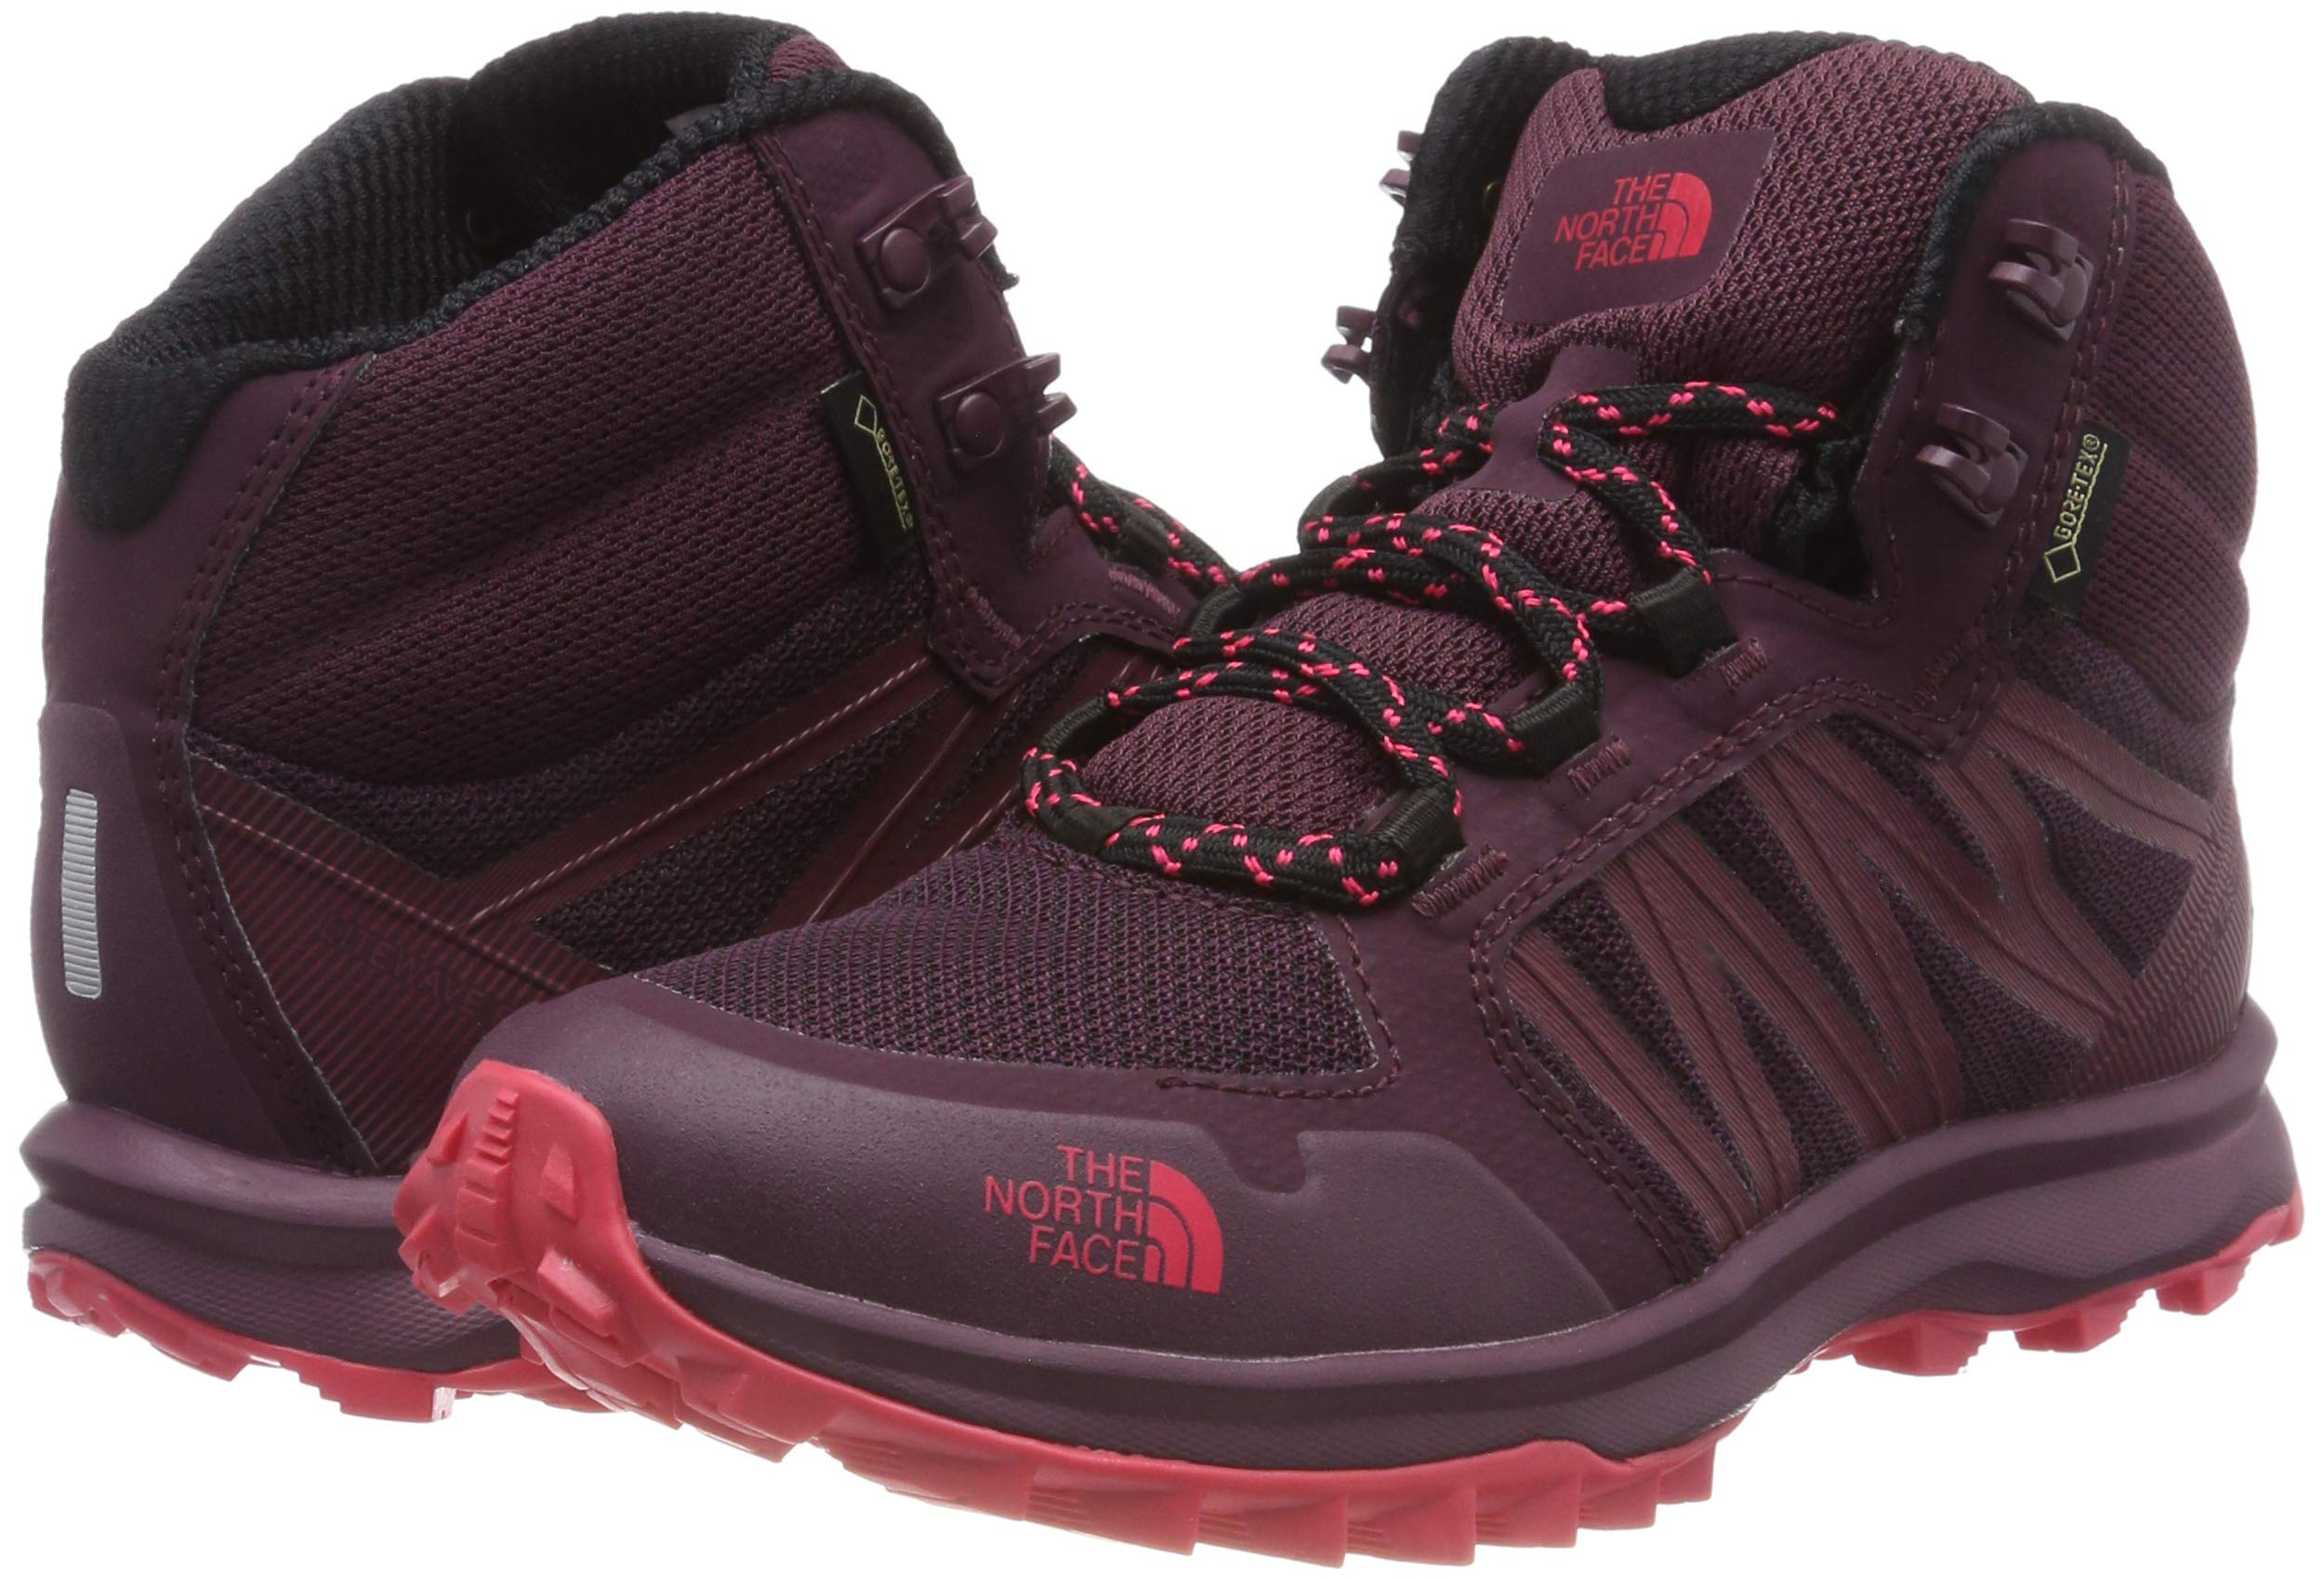 8abb99a78 THE NORTH FACE Women's Litewave Fastpack Mid Gore-tex High Rise ...